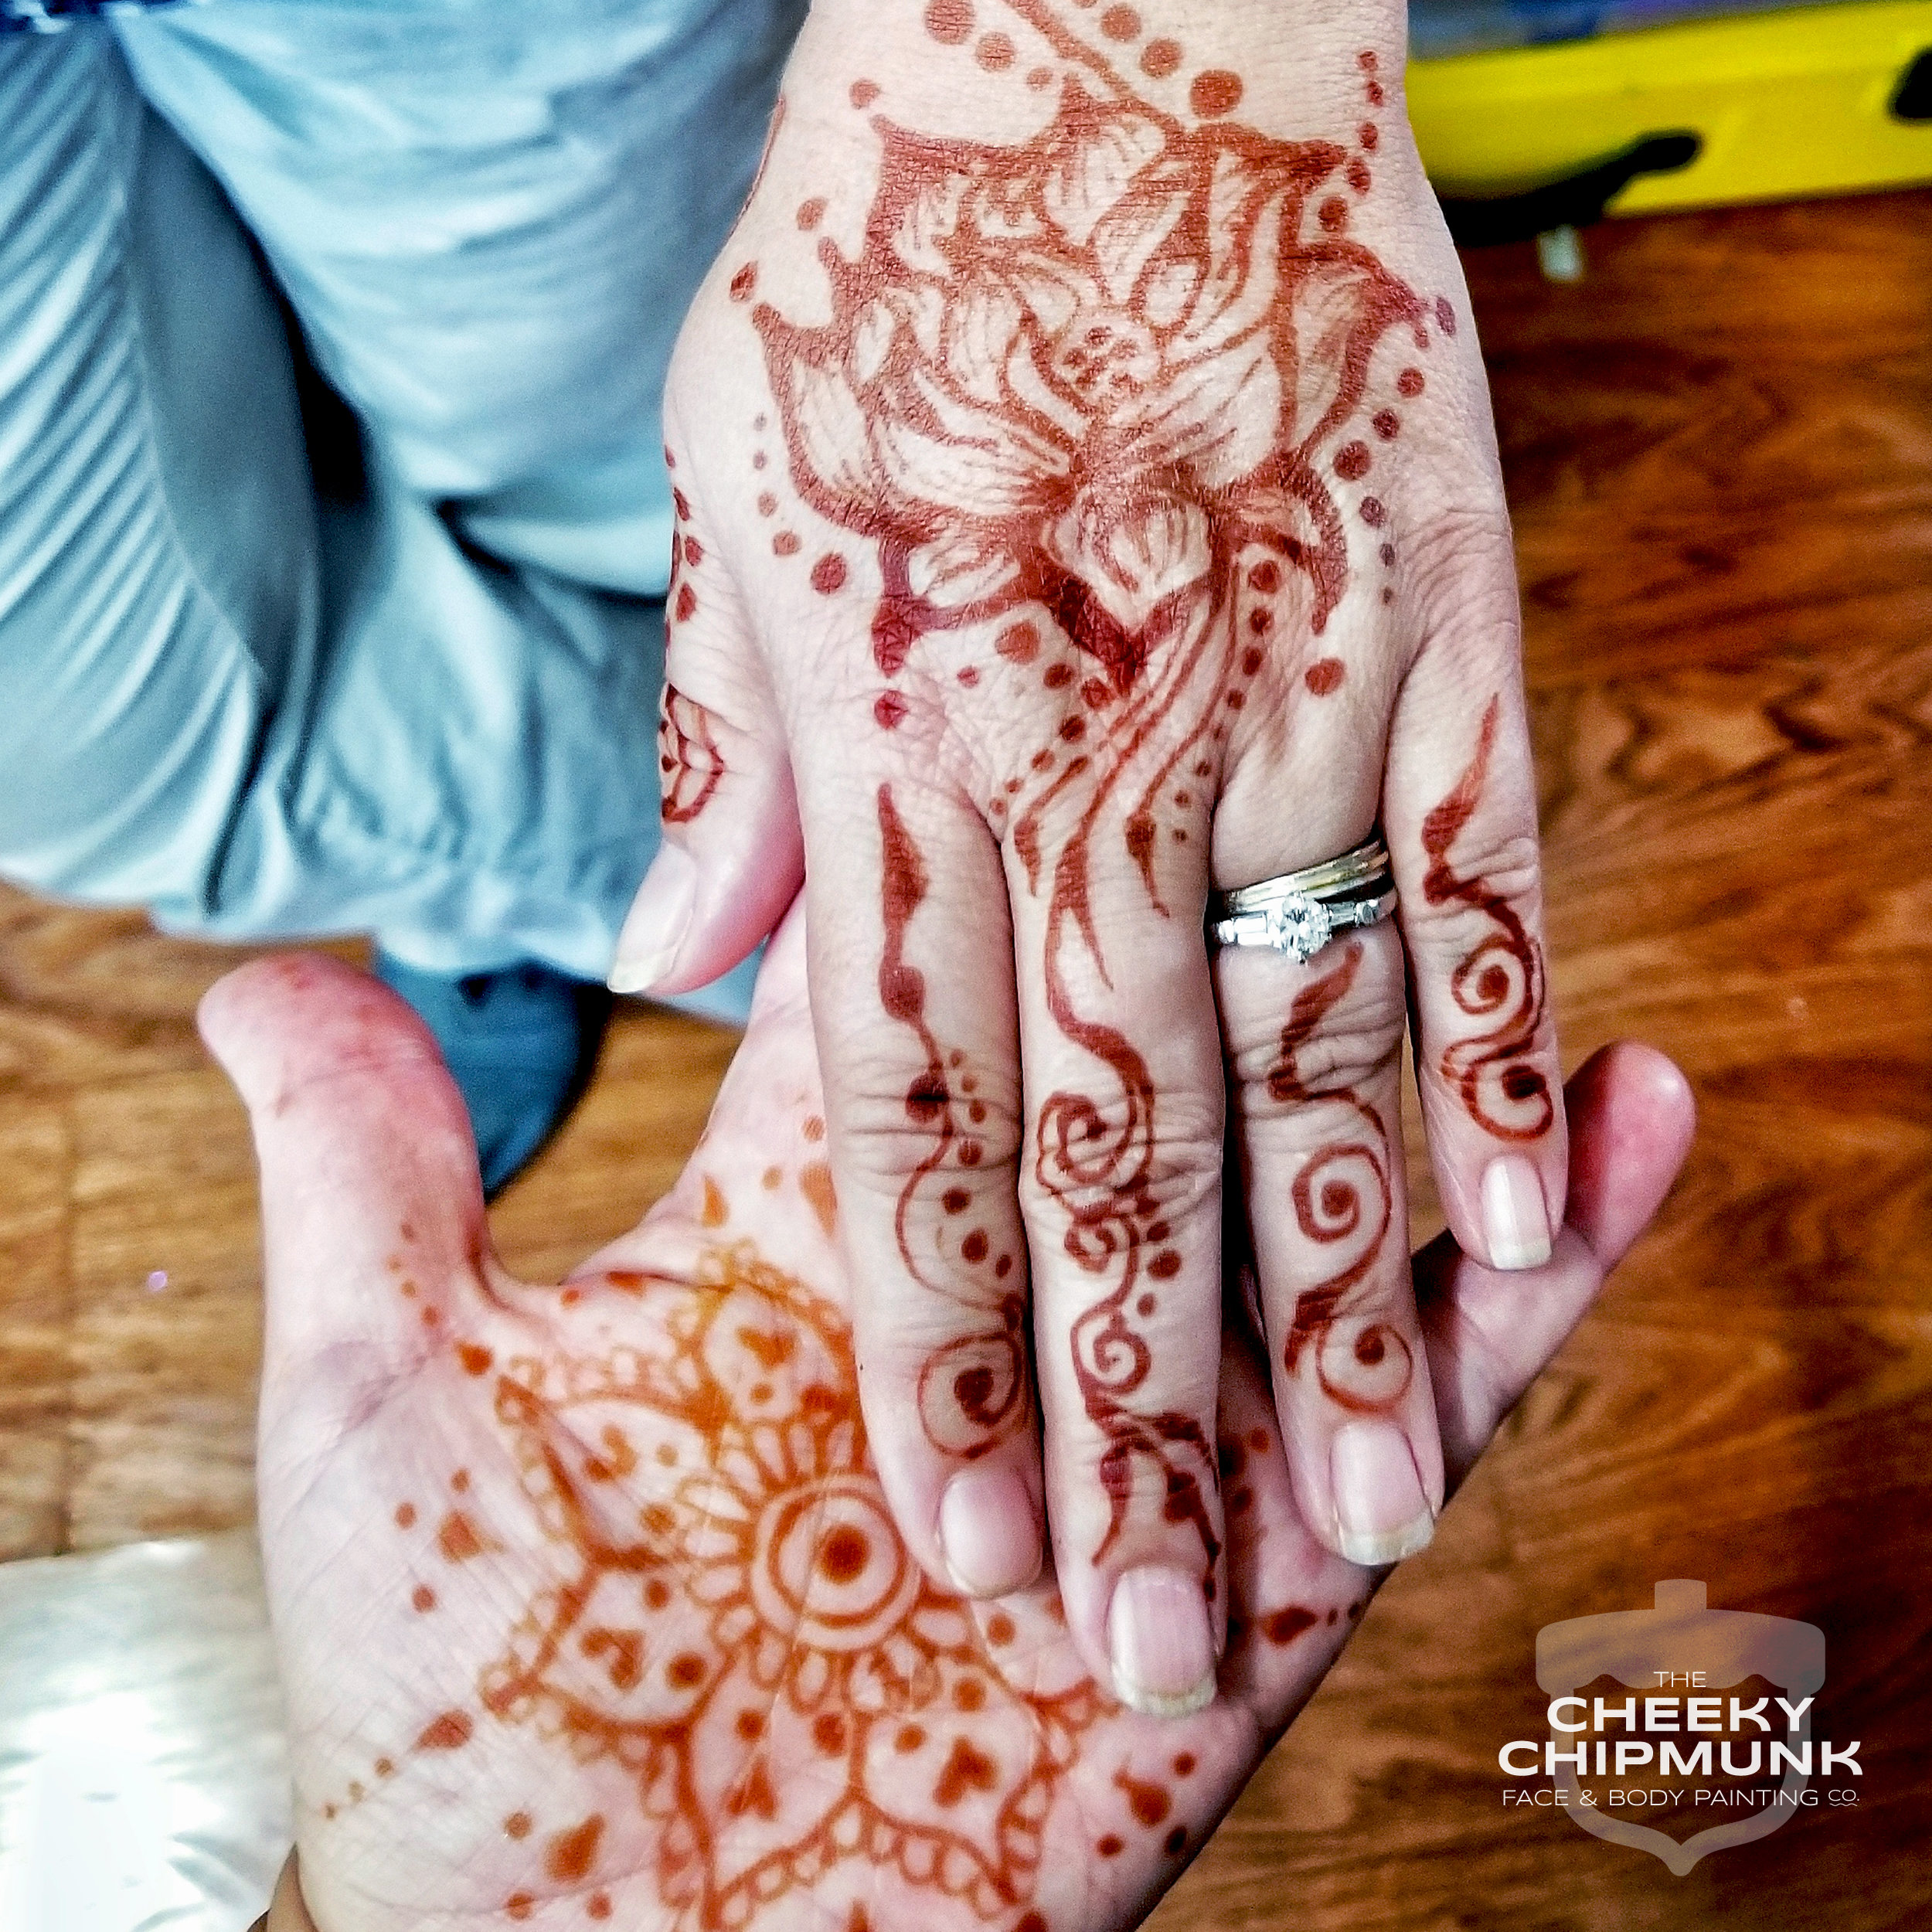 lenore-koppelman-the-cheeky-chipmunk-henna-lotus-holding-hands-organic-natural-red-brown-henna-art-diamond-wedding-ring-body-art-mehndi